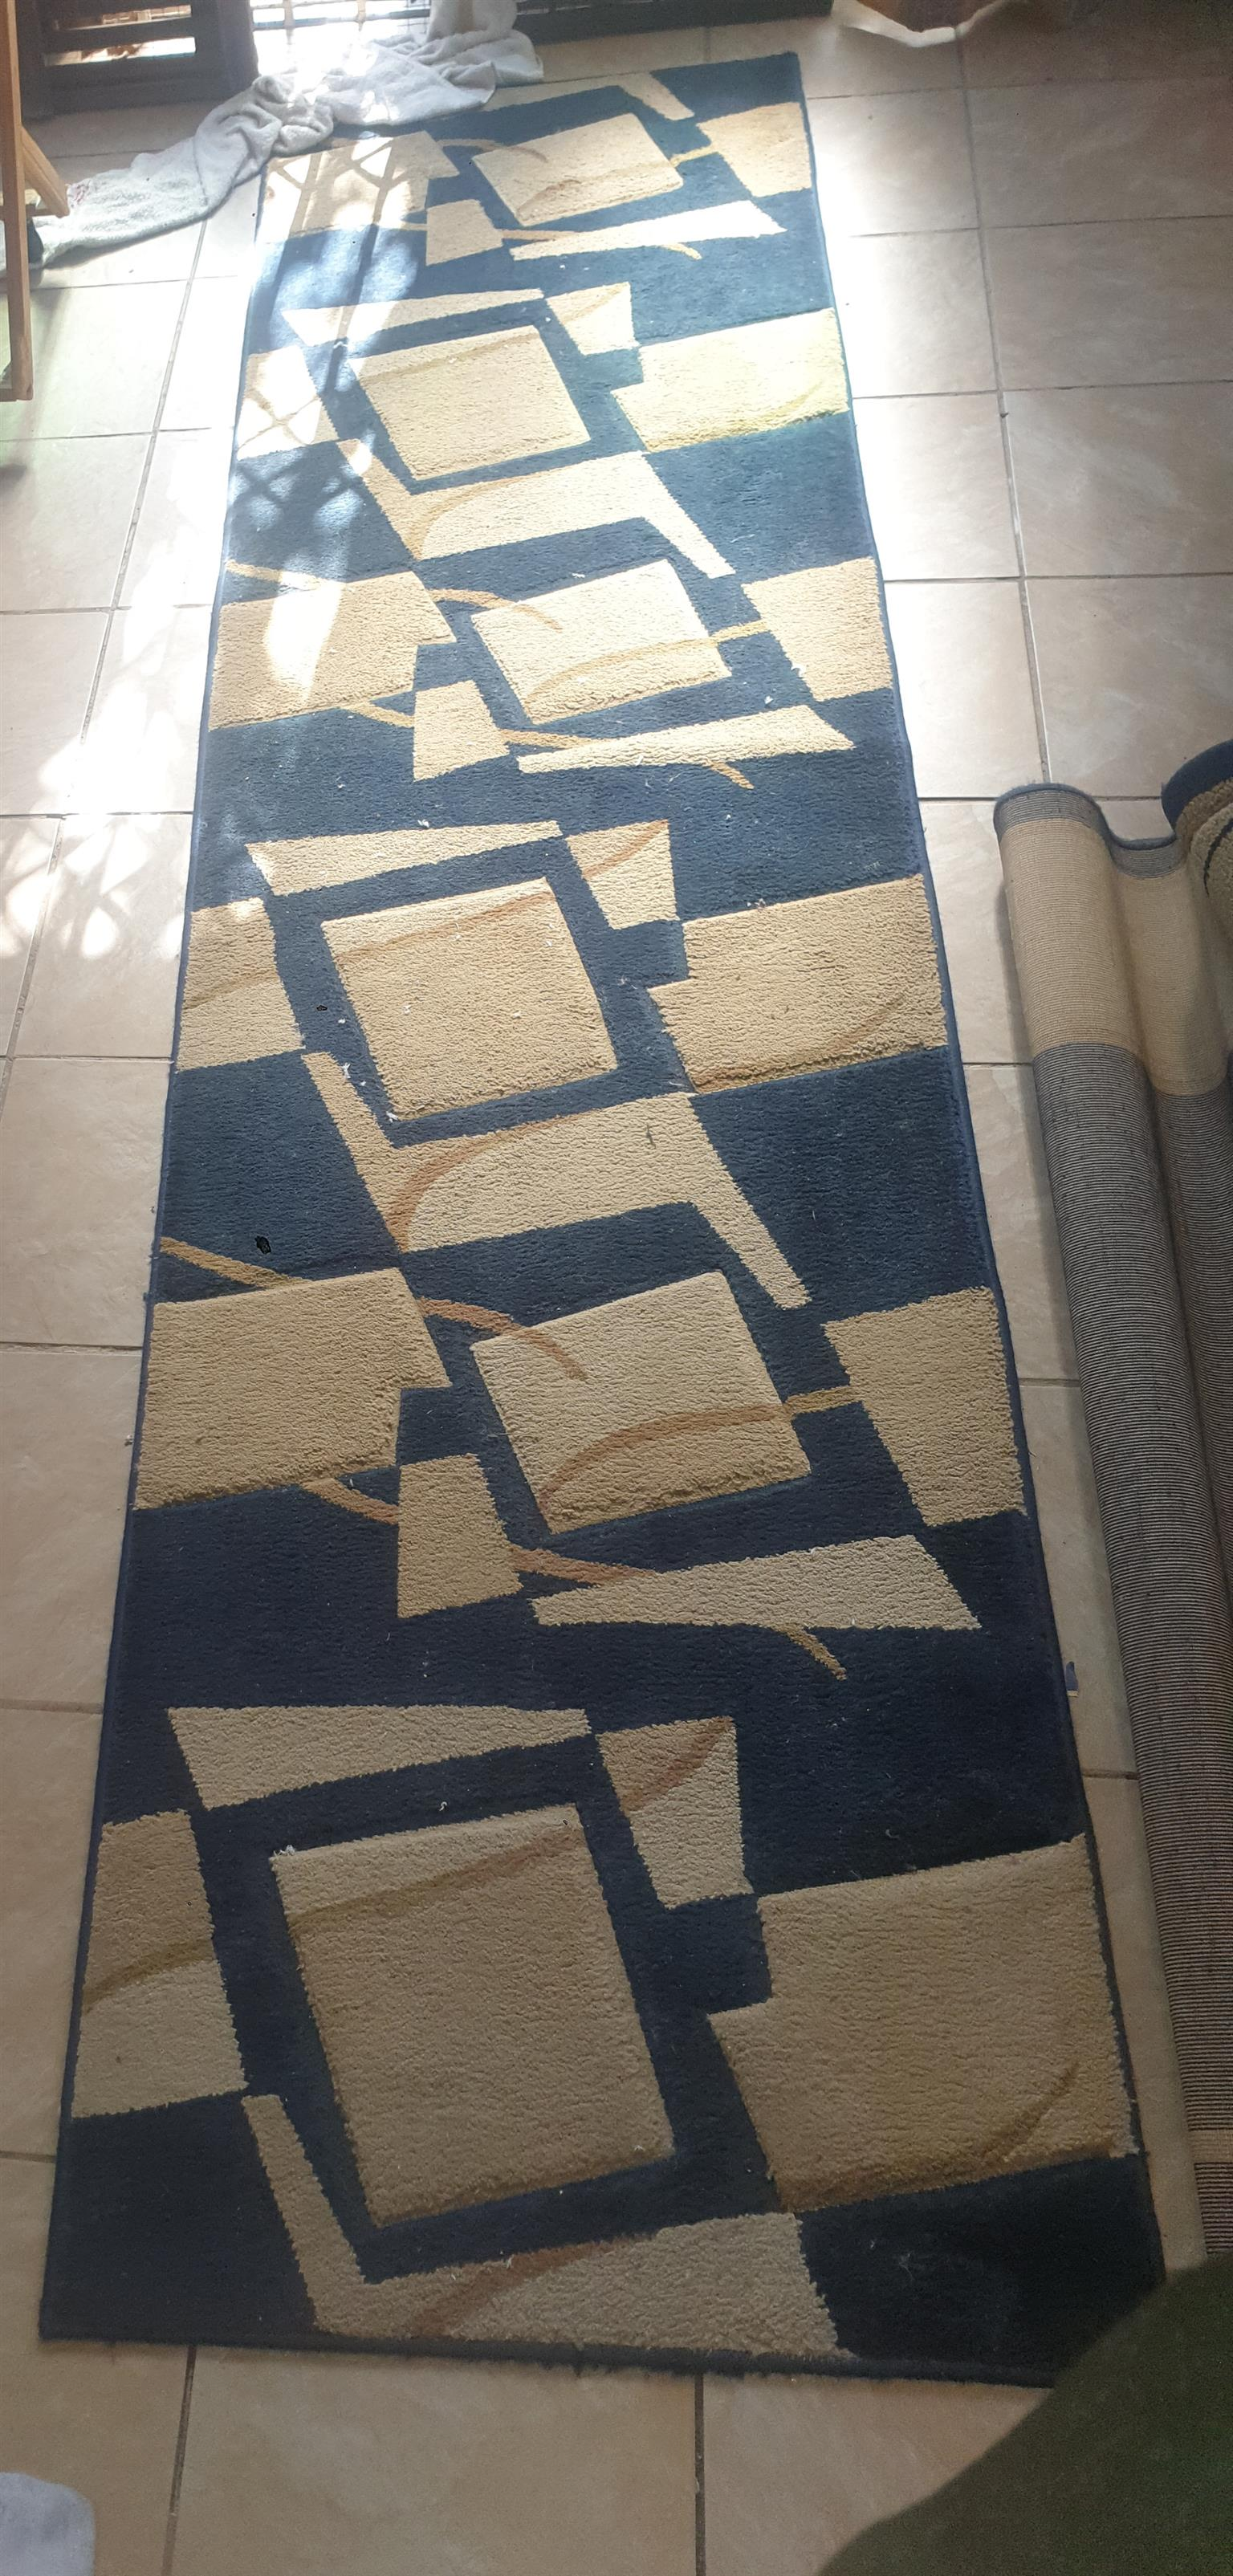 2 carpets for sale